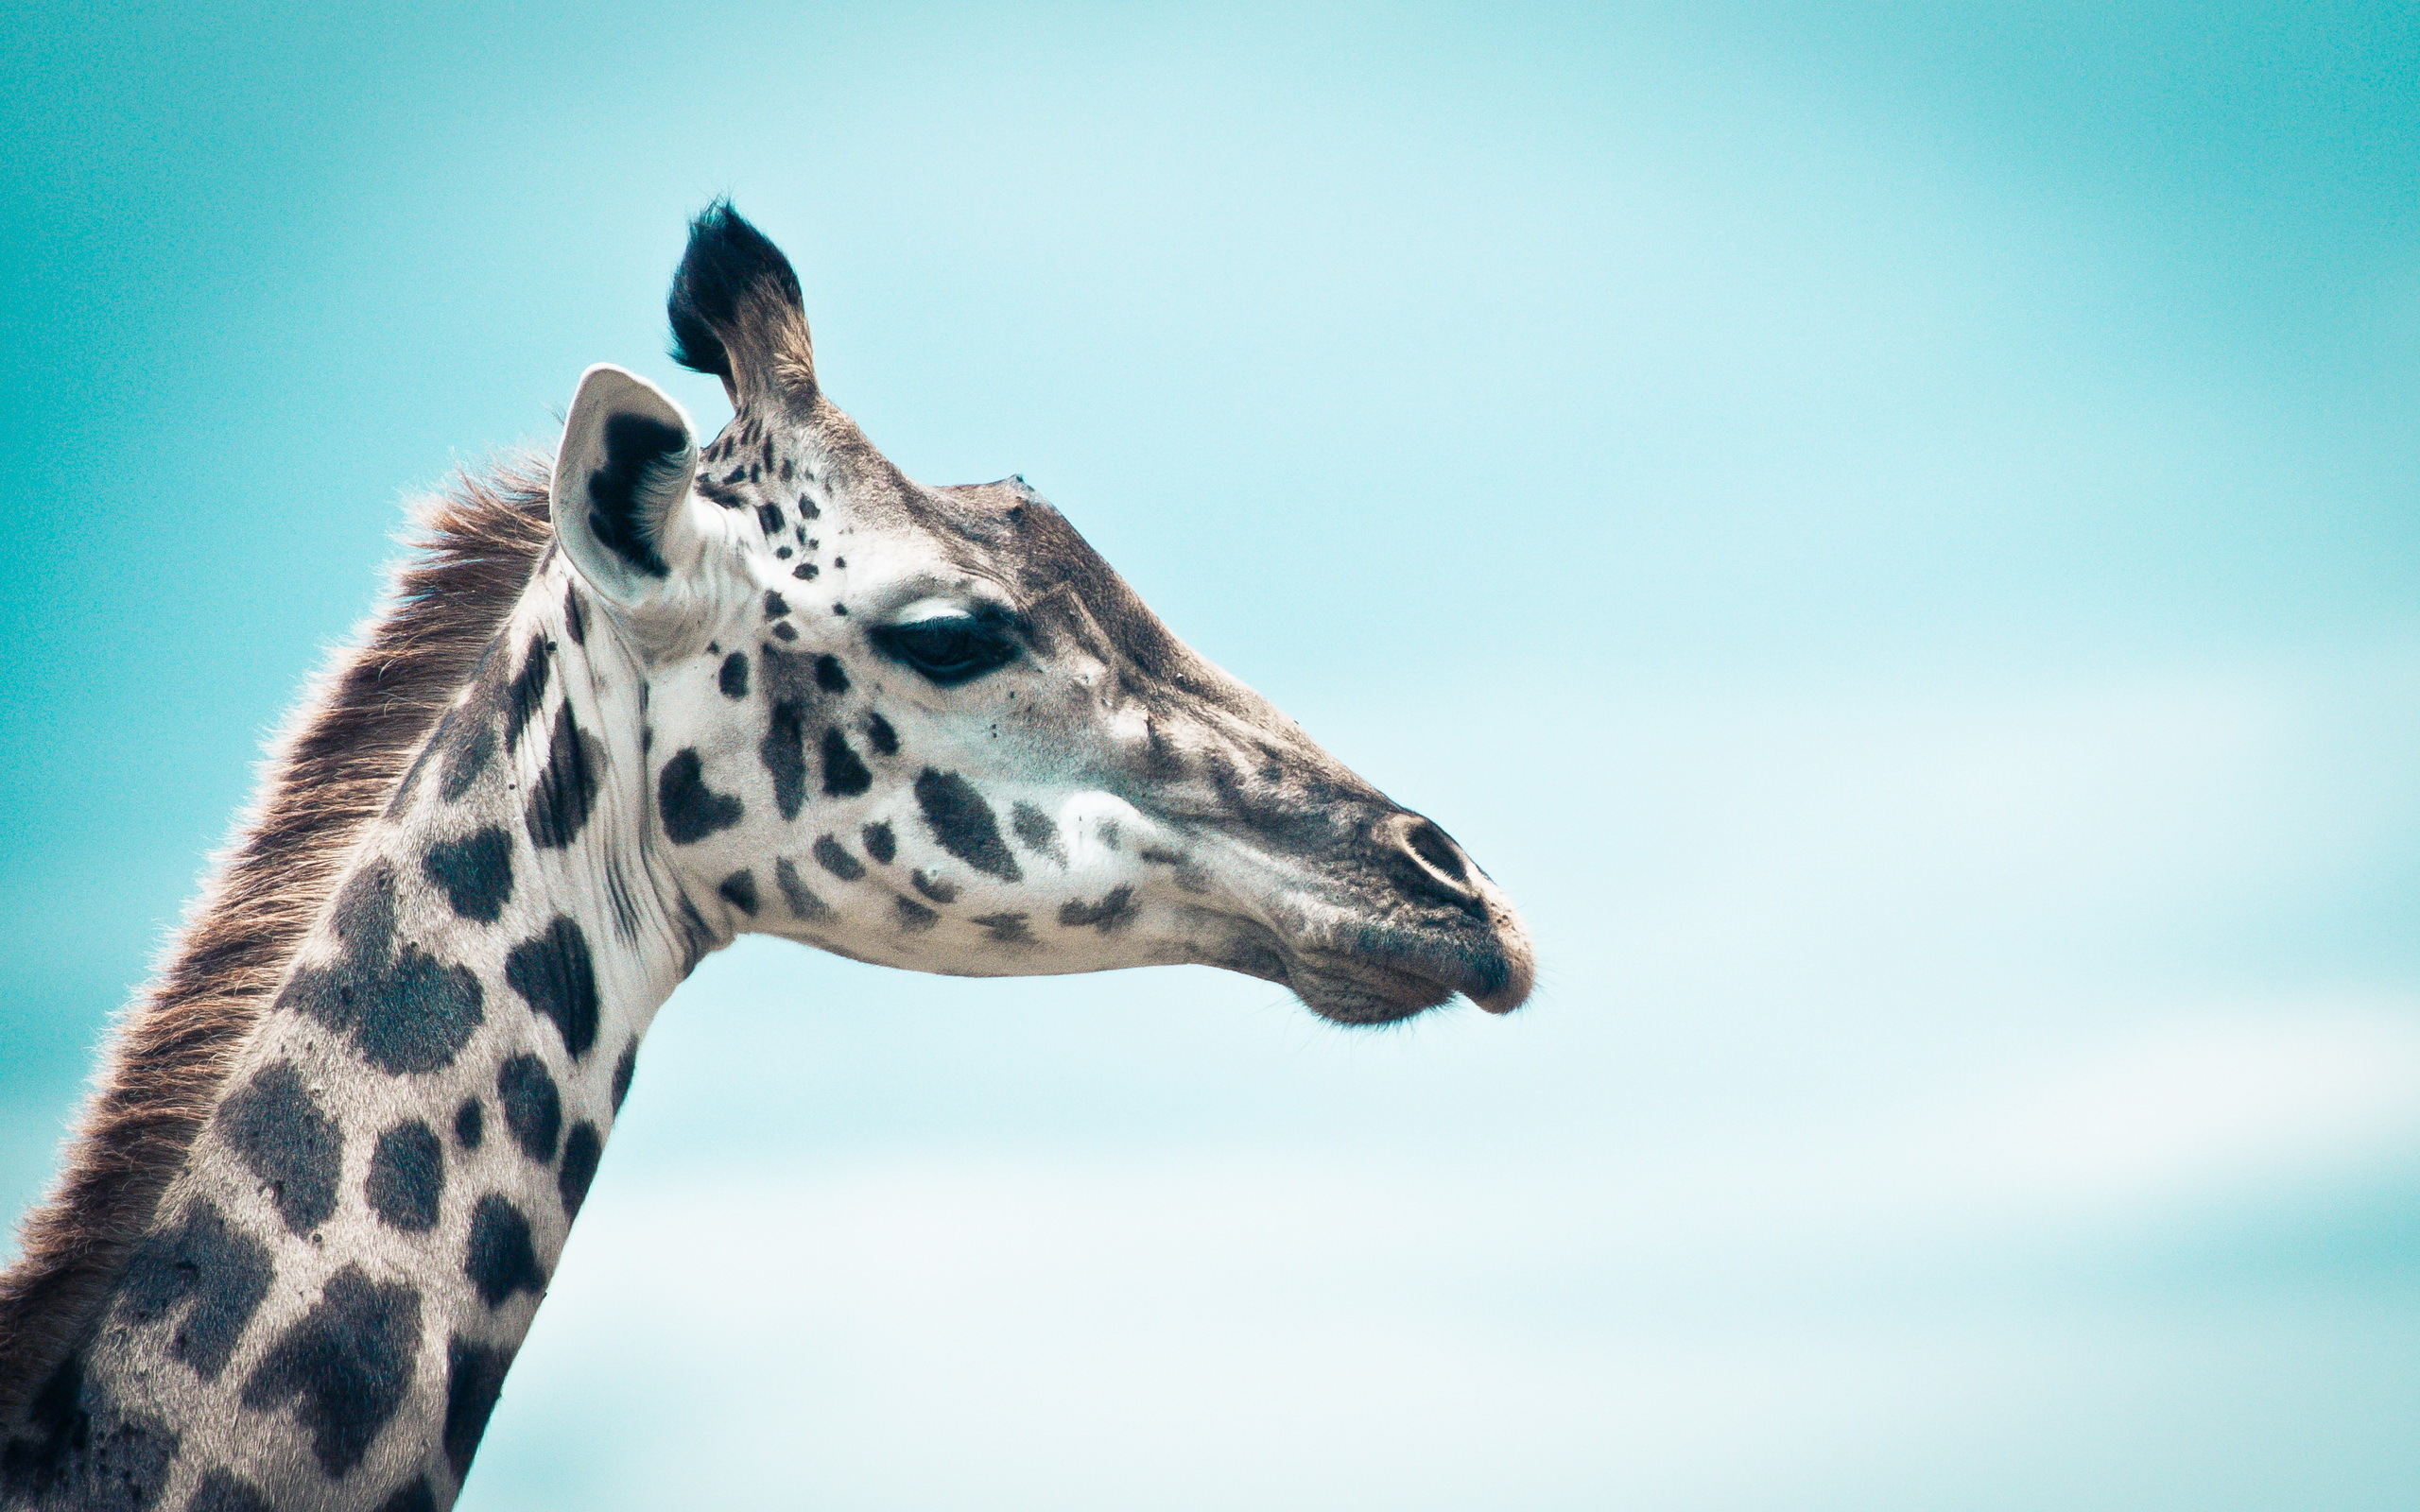 giraffe hd wallpapers hd wallpapers cool images tablet background 2560x1600